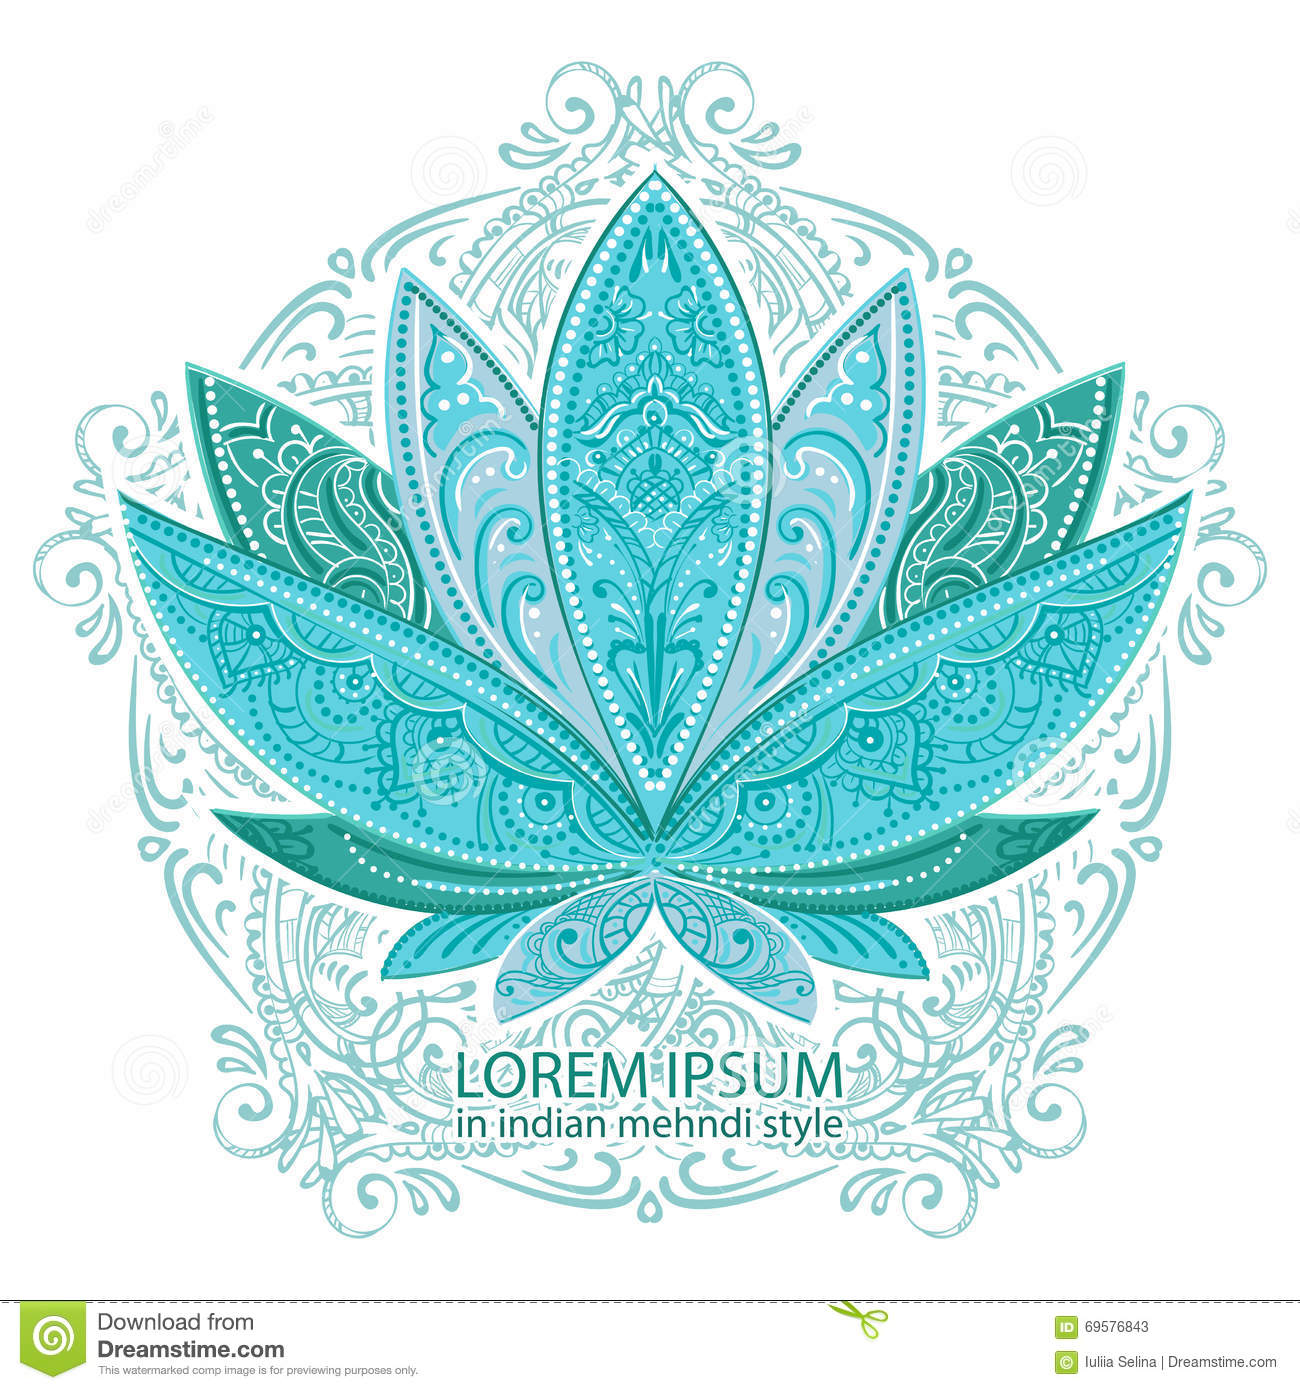 Unusually Vector Image Of A Lotus Ornate Paisley Mandala And Mehendi Great For Greeting Cards Yoga Store Spices Ethnic Shop Printing